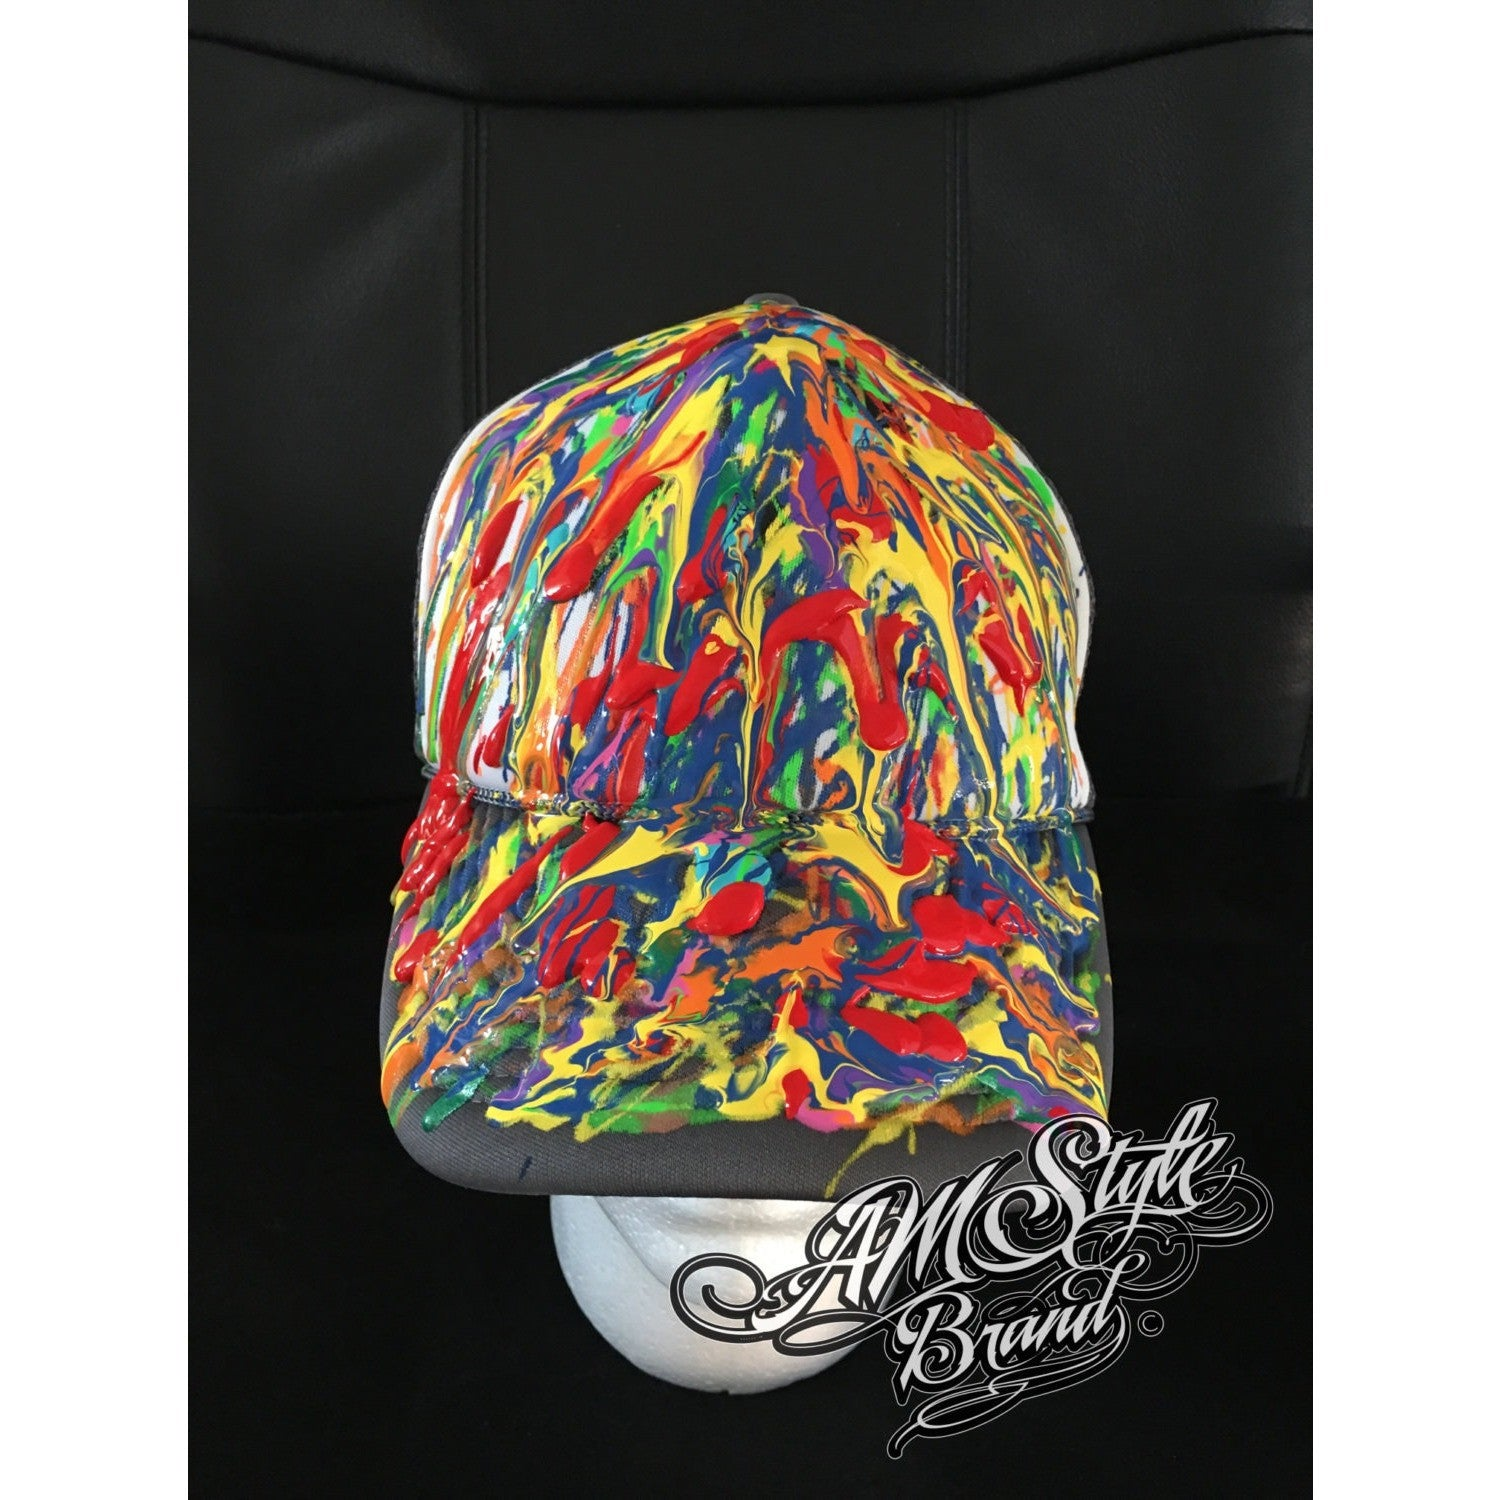 Abstract Art on Trucker hats, Colorful art, Custom and Unique, Original and Made to Order.